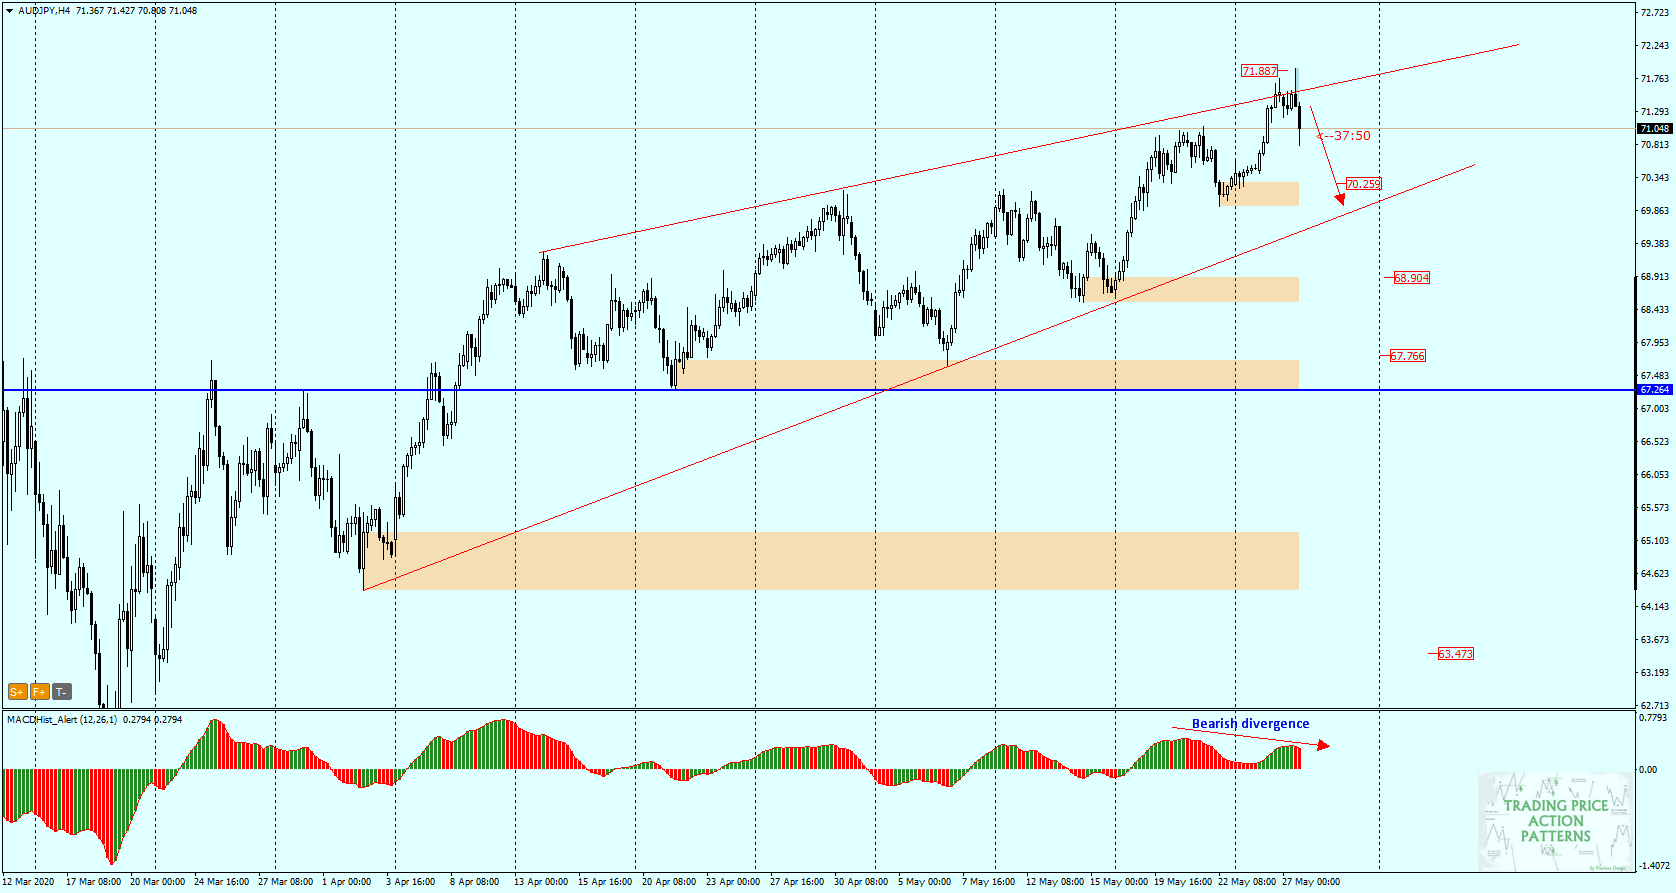 AUD/JPY H4 - bearish divergence on MACD